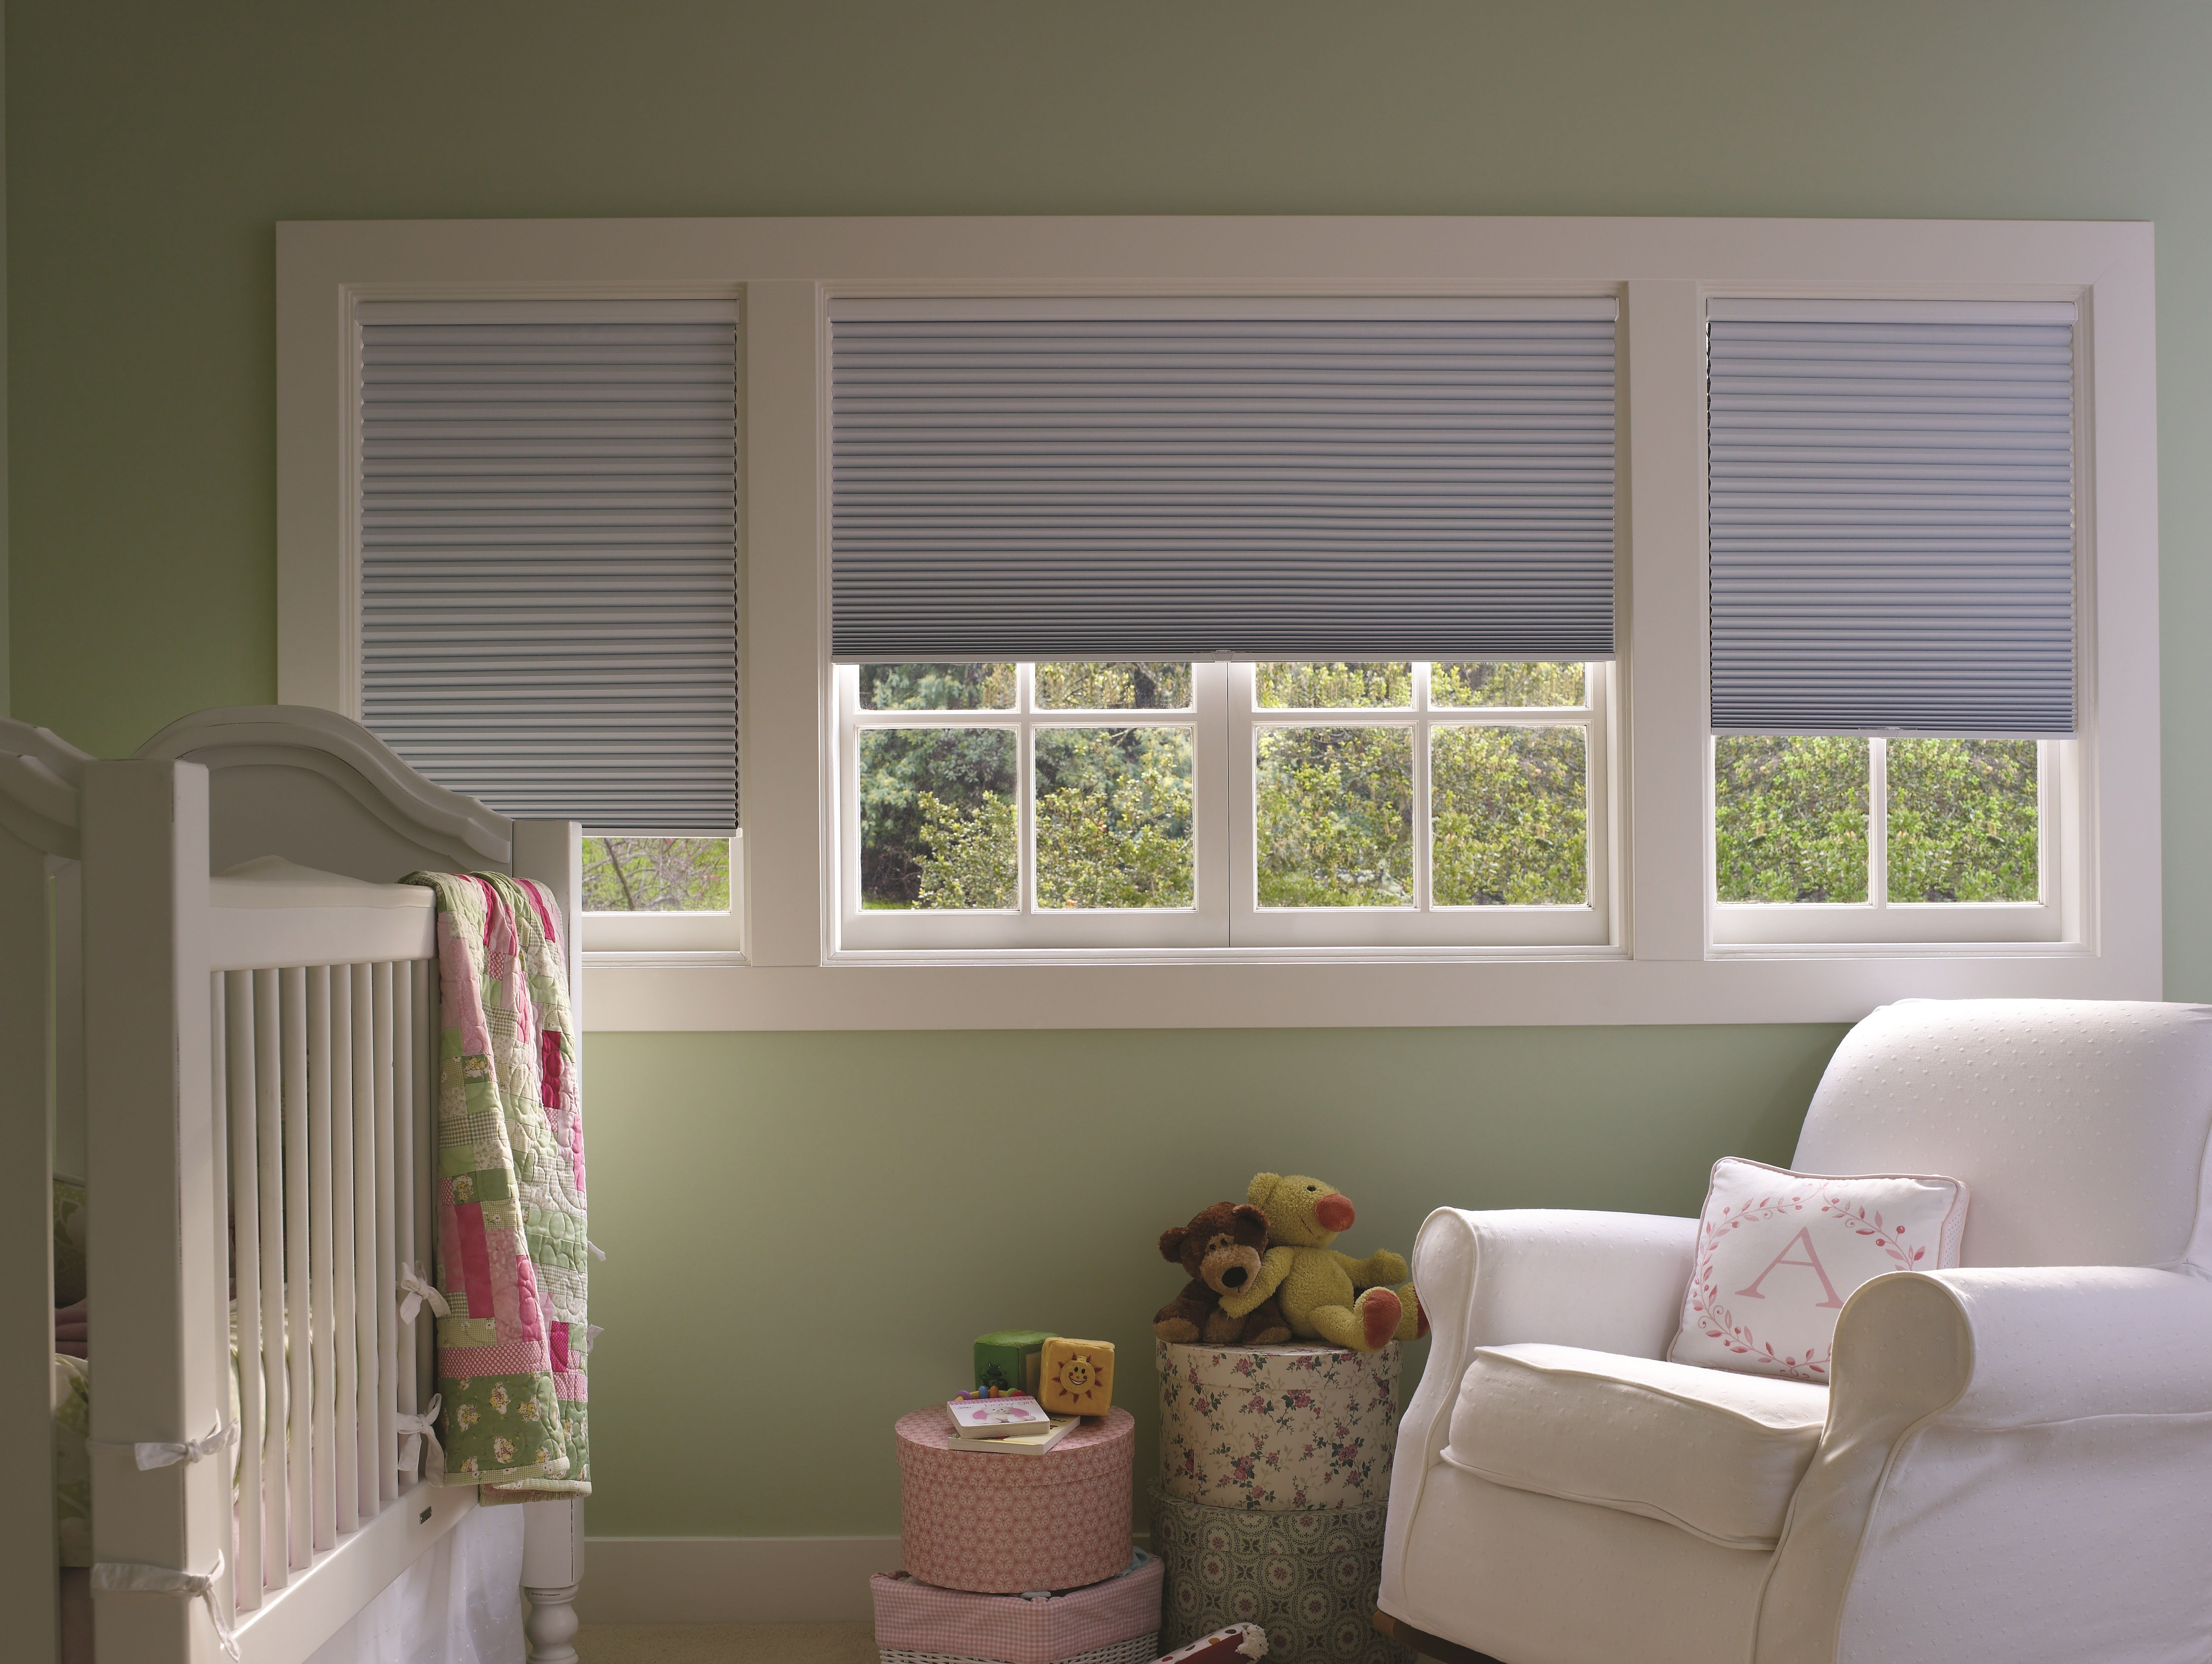 Our Shades Can Be Motorized Making Them An Ideal Solution For Homes With Small Children And Pets T Kid Room Decor Custom Window Coverings Window Coverings